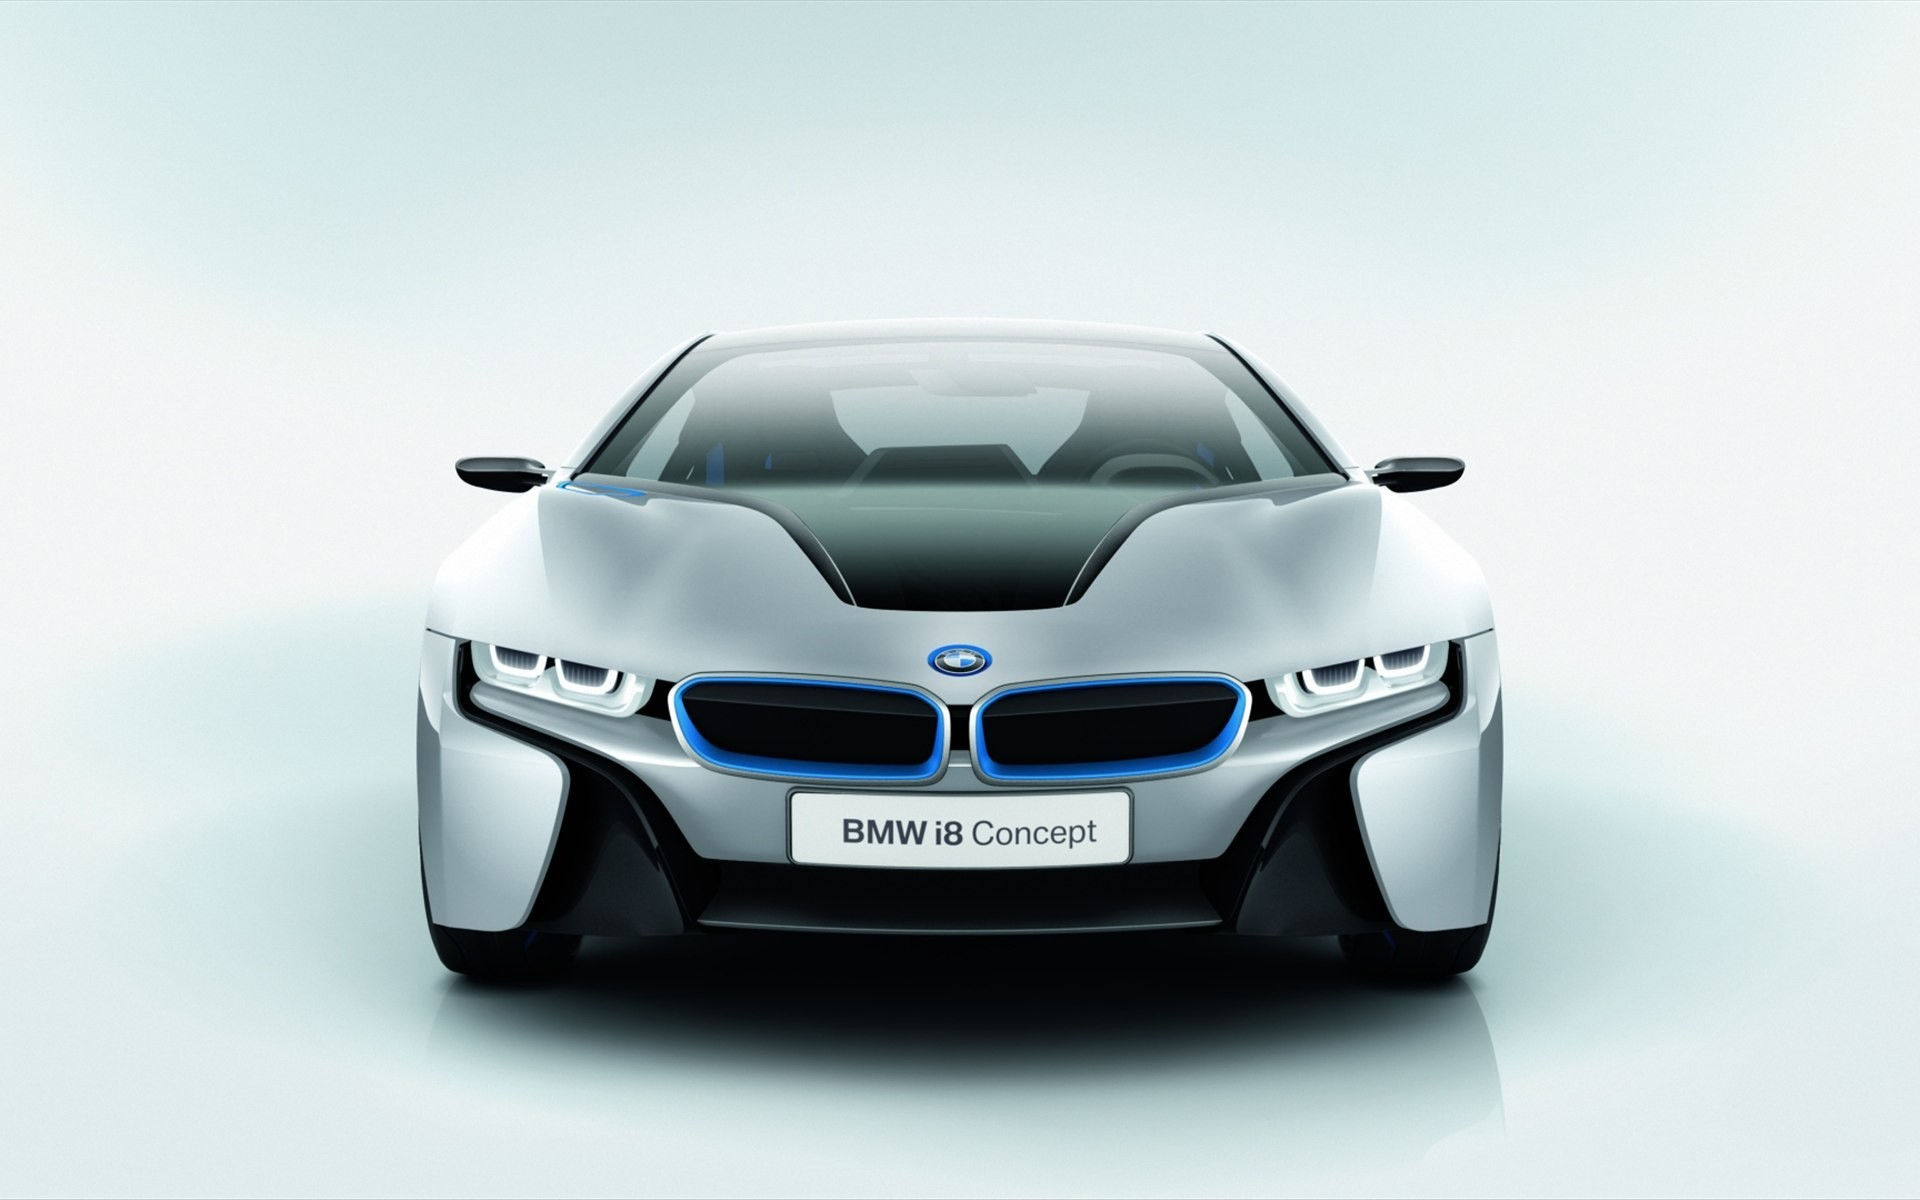 bmw i8 wallpaper desktop (70+ images)